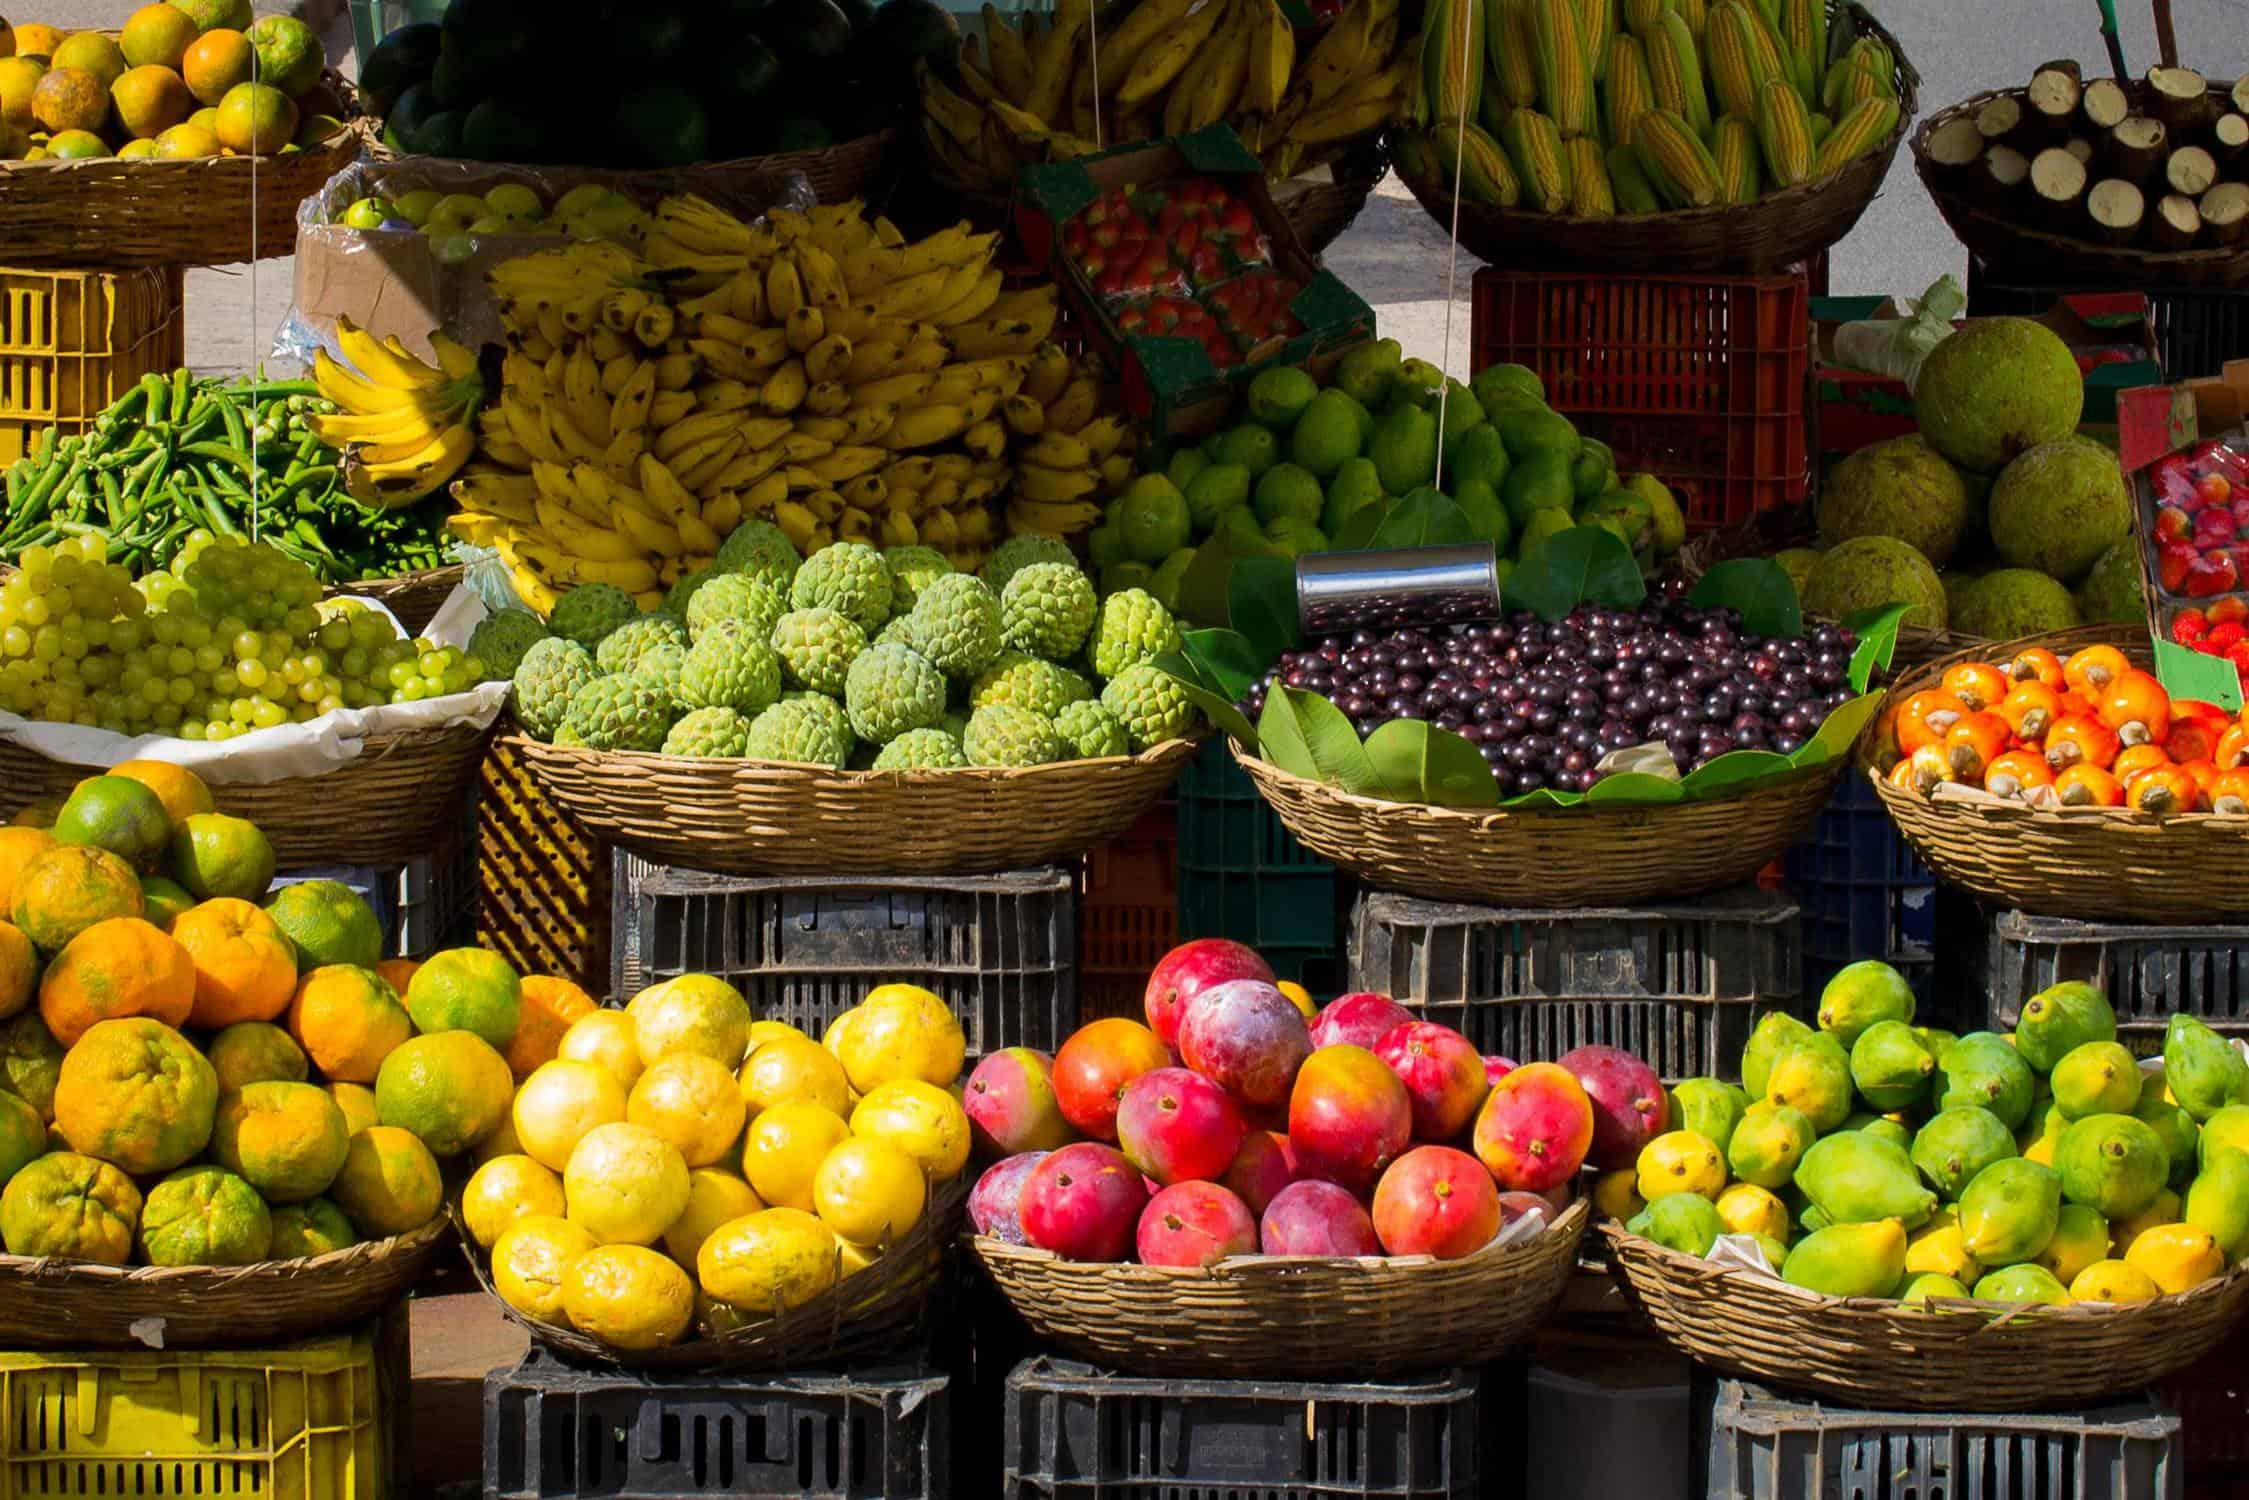 Fruits and Vegetables at Asian Market